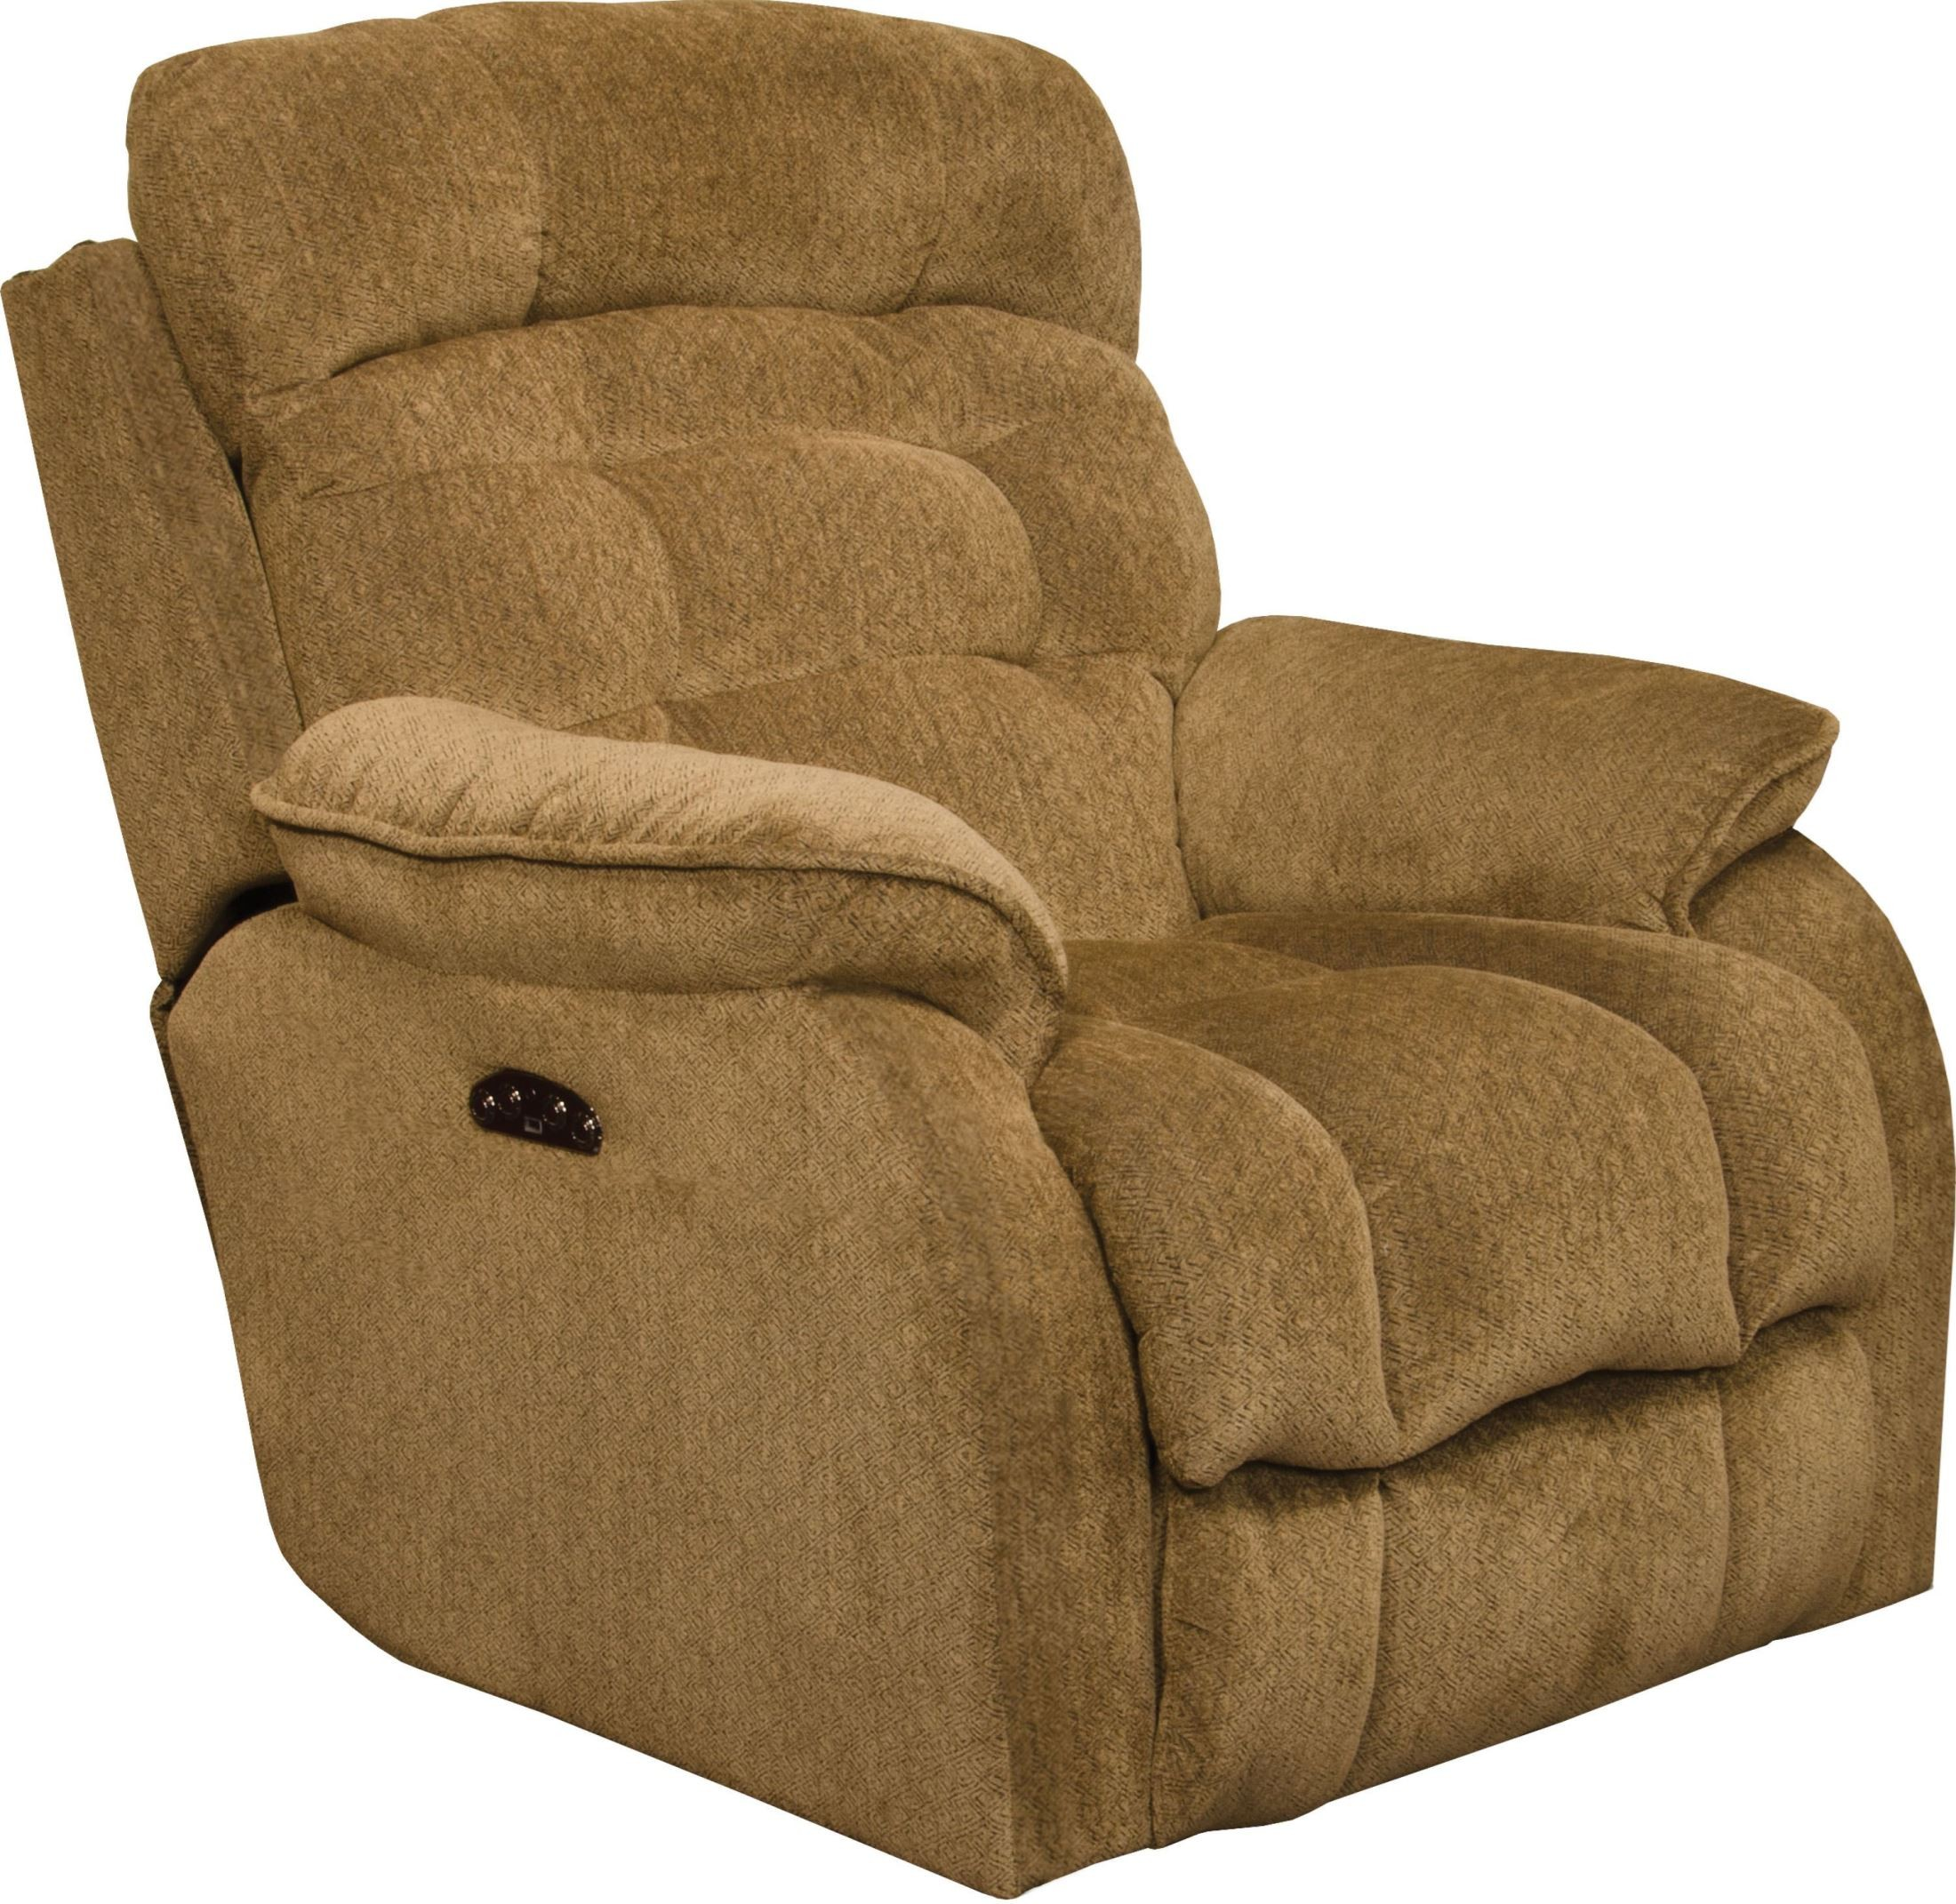 Crowley bronze power recliner from catnapper coleman for Catnapper cloud nine chaise recliner